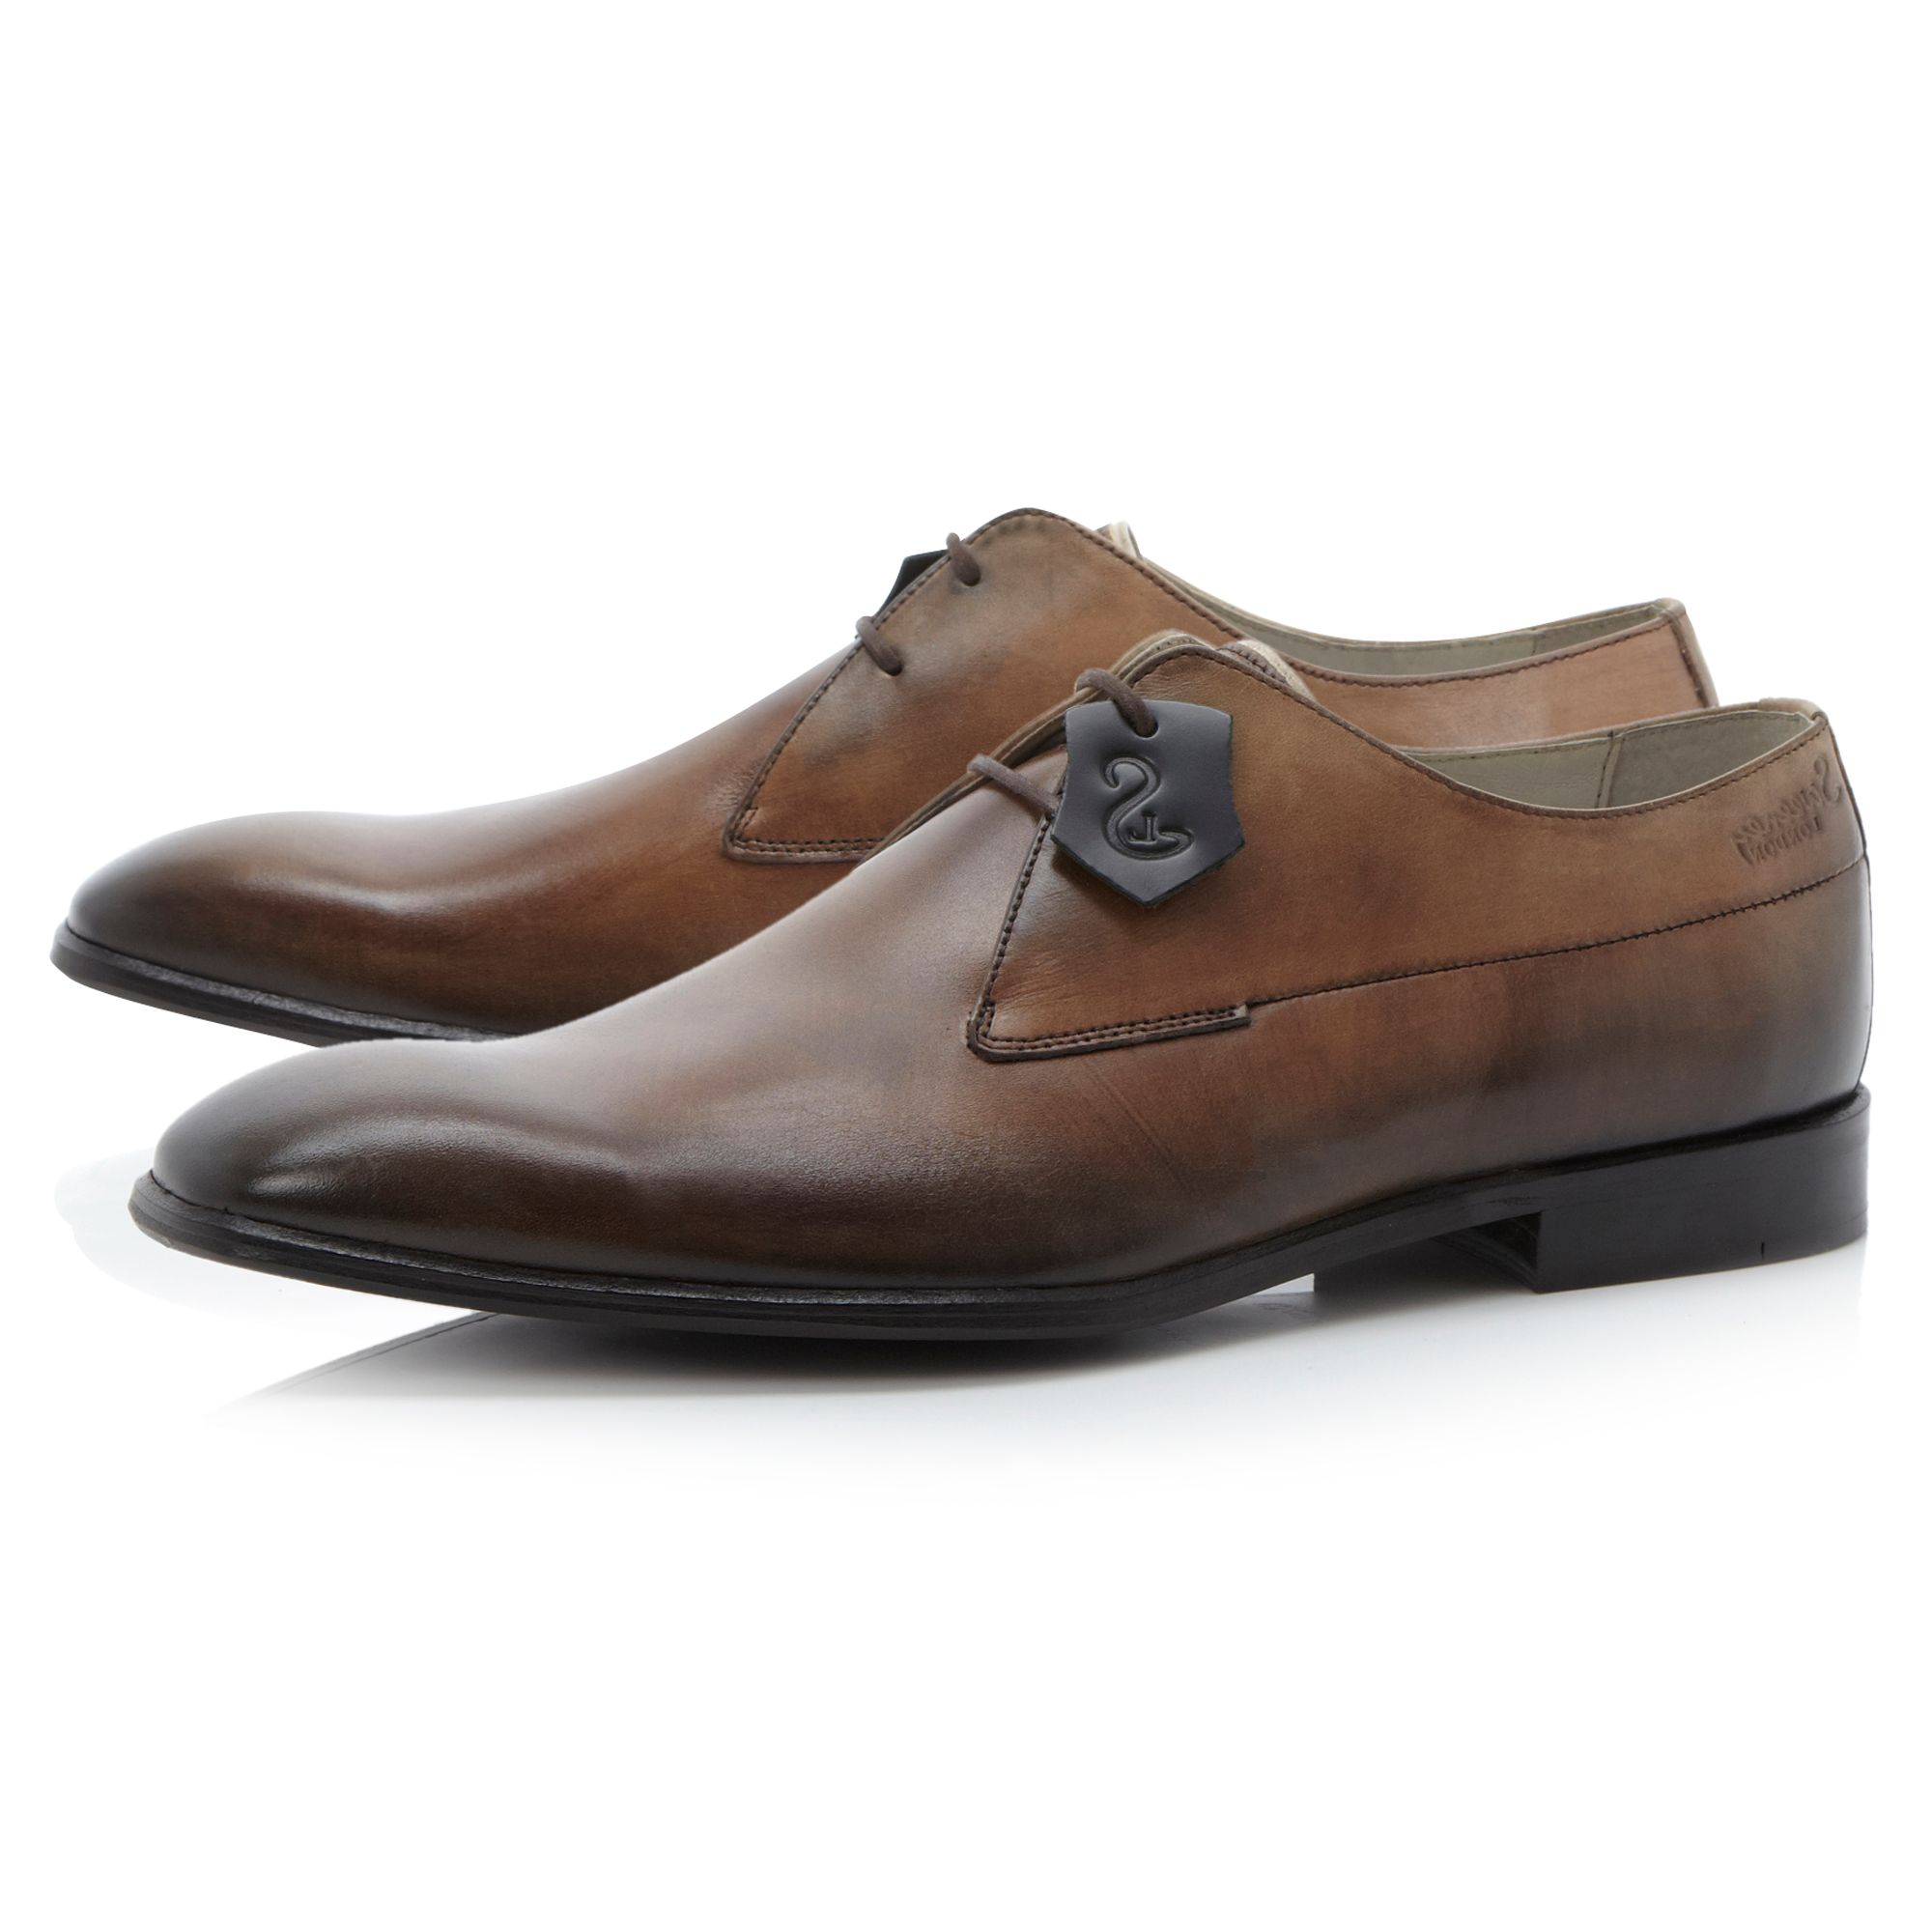 Reydon-2 eye plain toe derby shoe